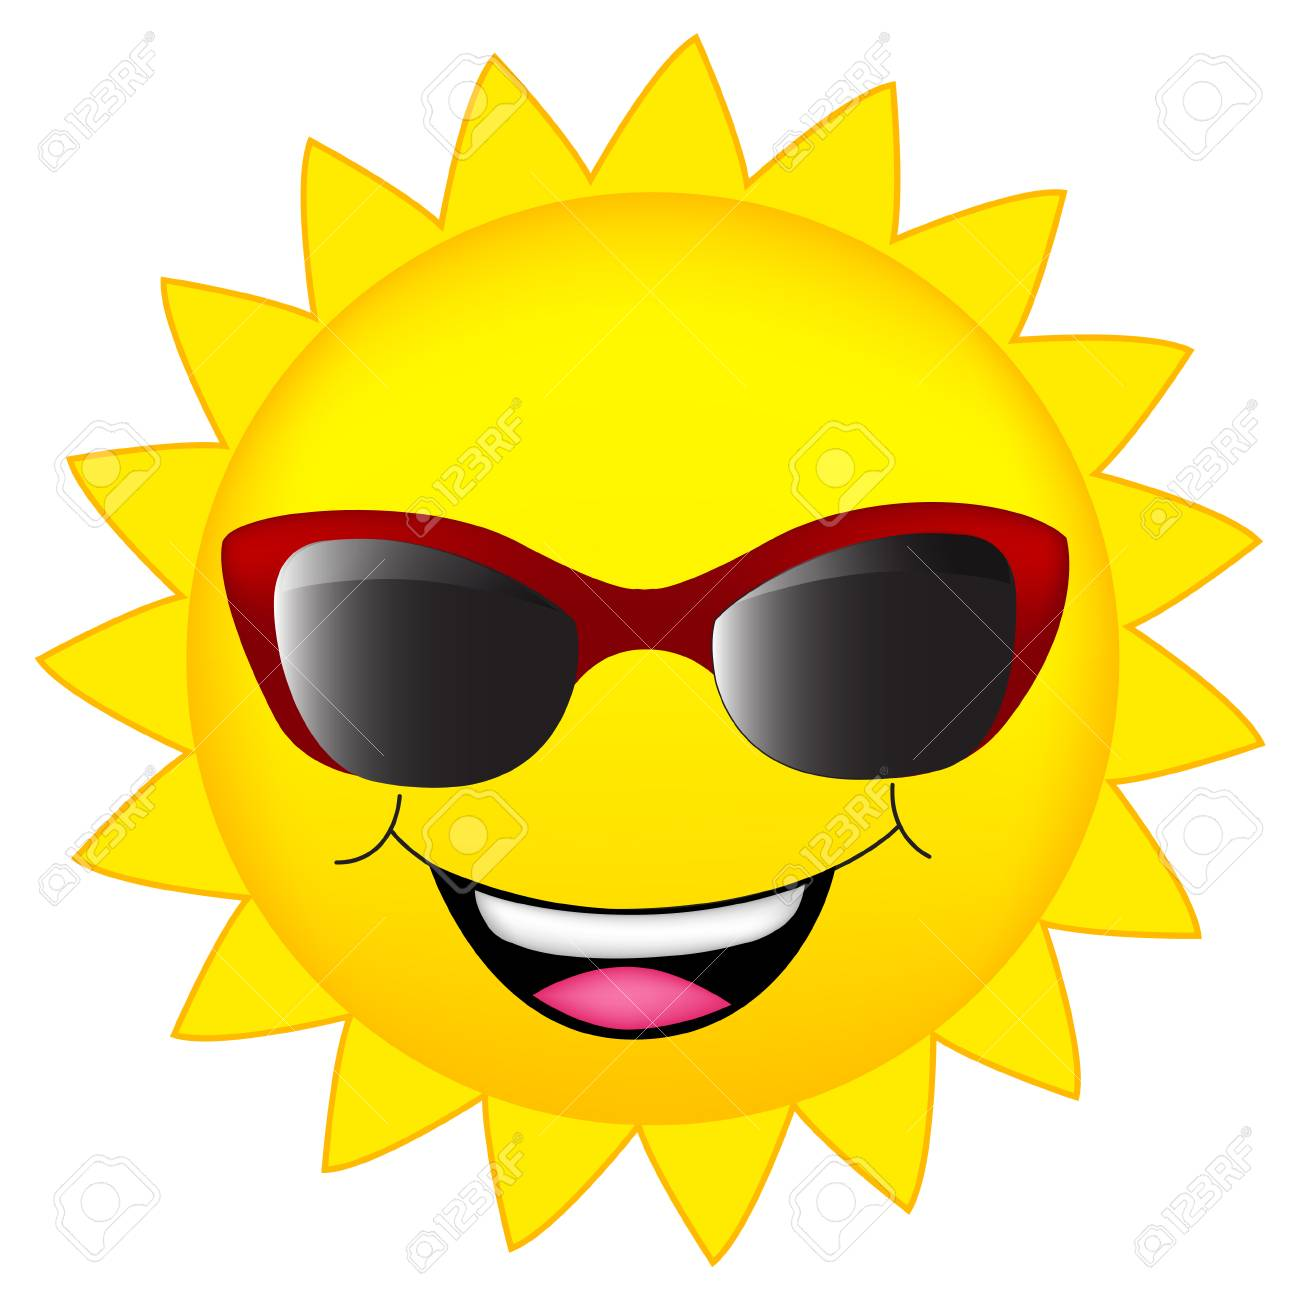 happy sun wearing sunglasses clipart isolated on white royalty free rh 123rf com